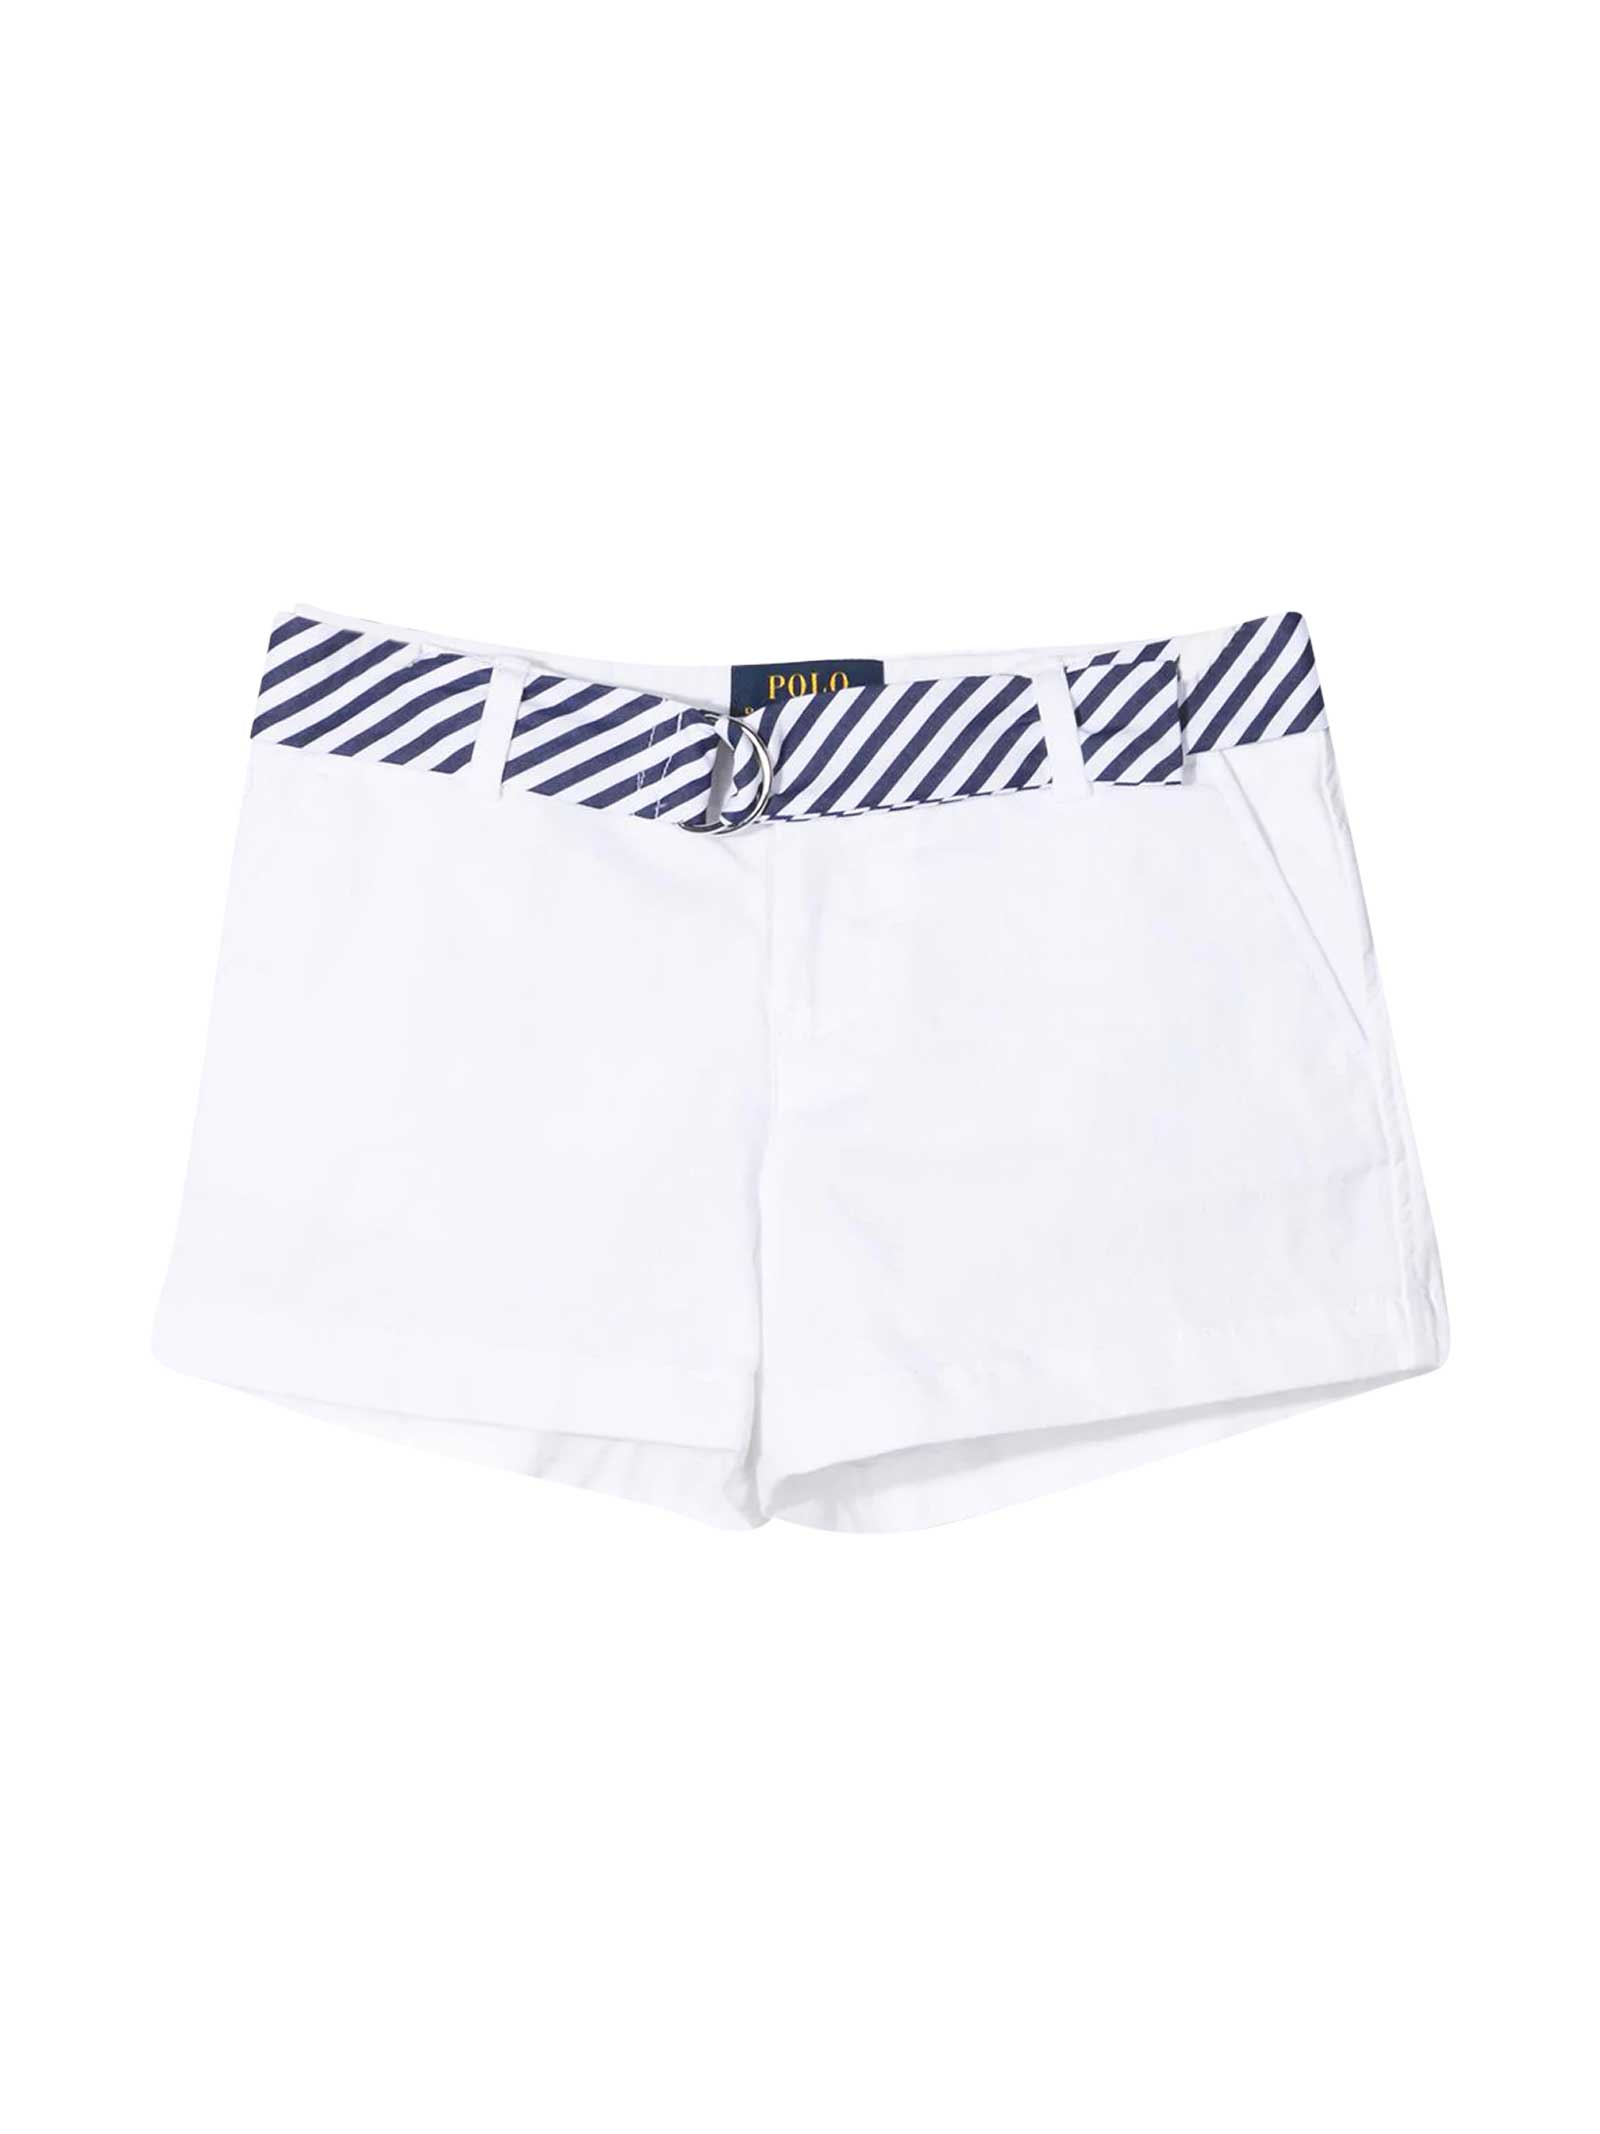 Ralph Lauren White Shorts